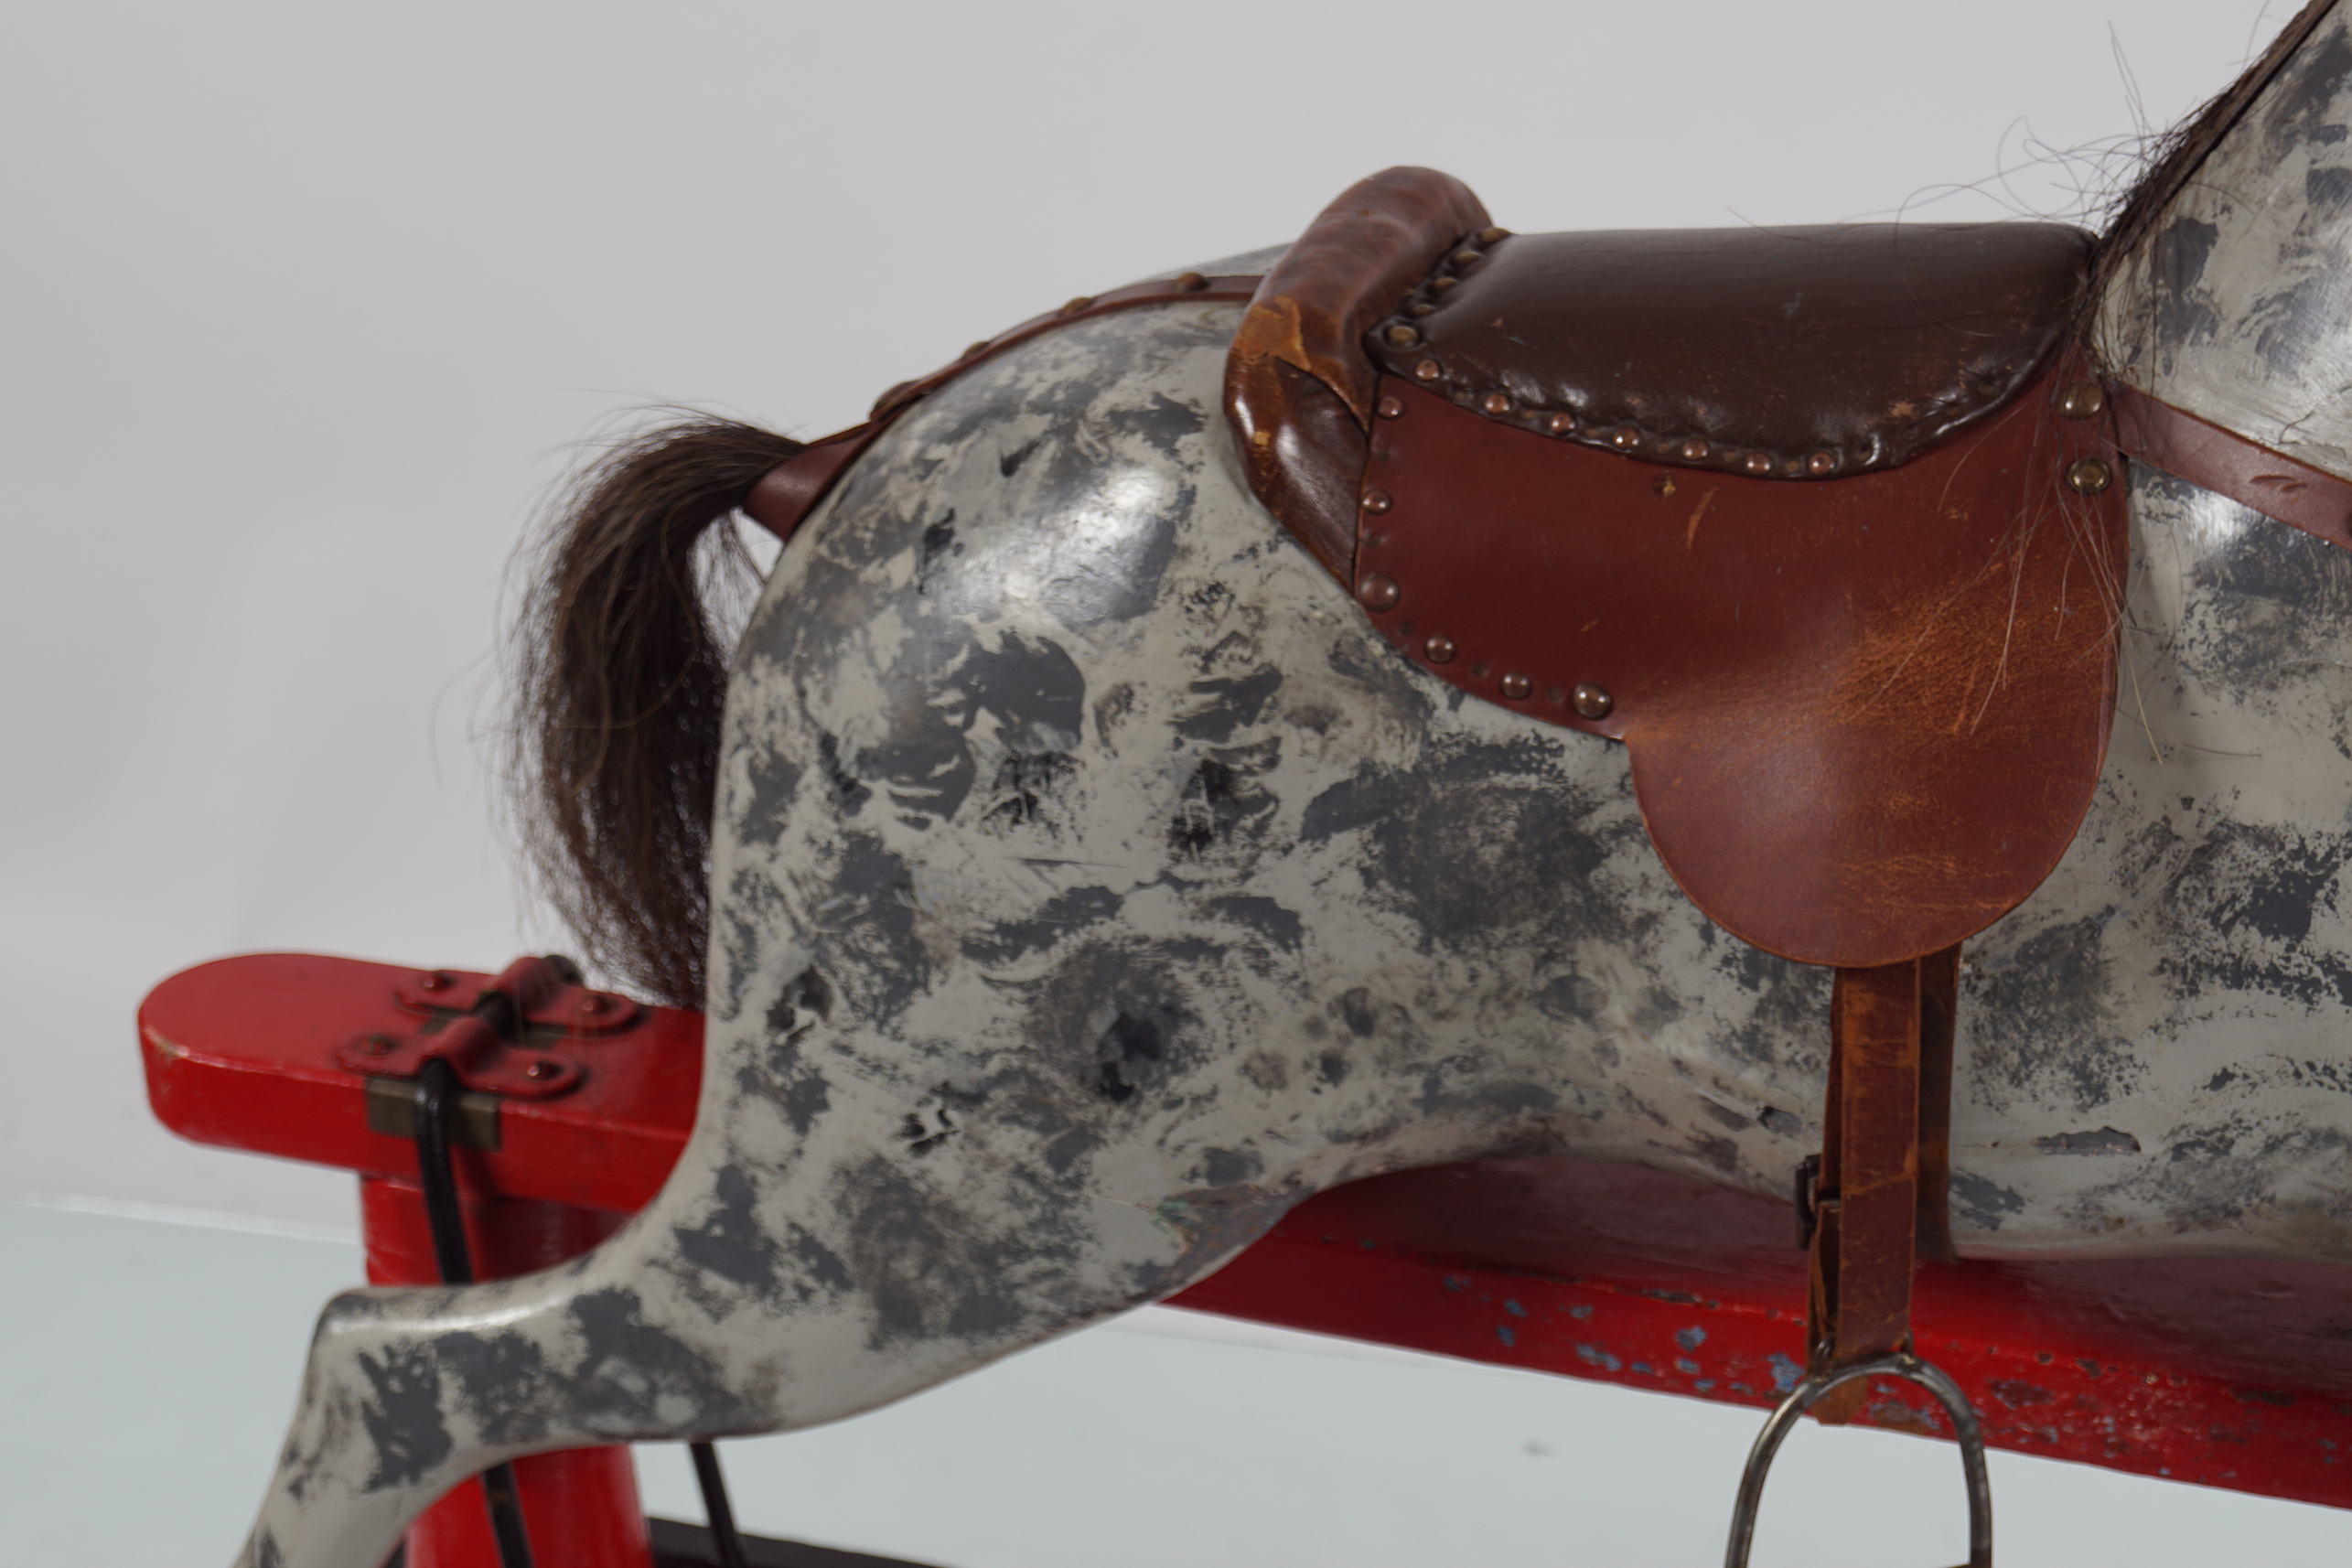 ANTIQUE POLYCHROME WOODEN ROCKING HORSE - Image 3 of 4